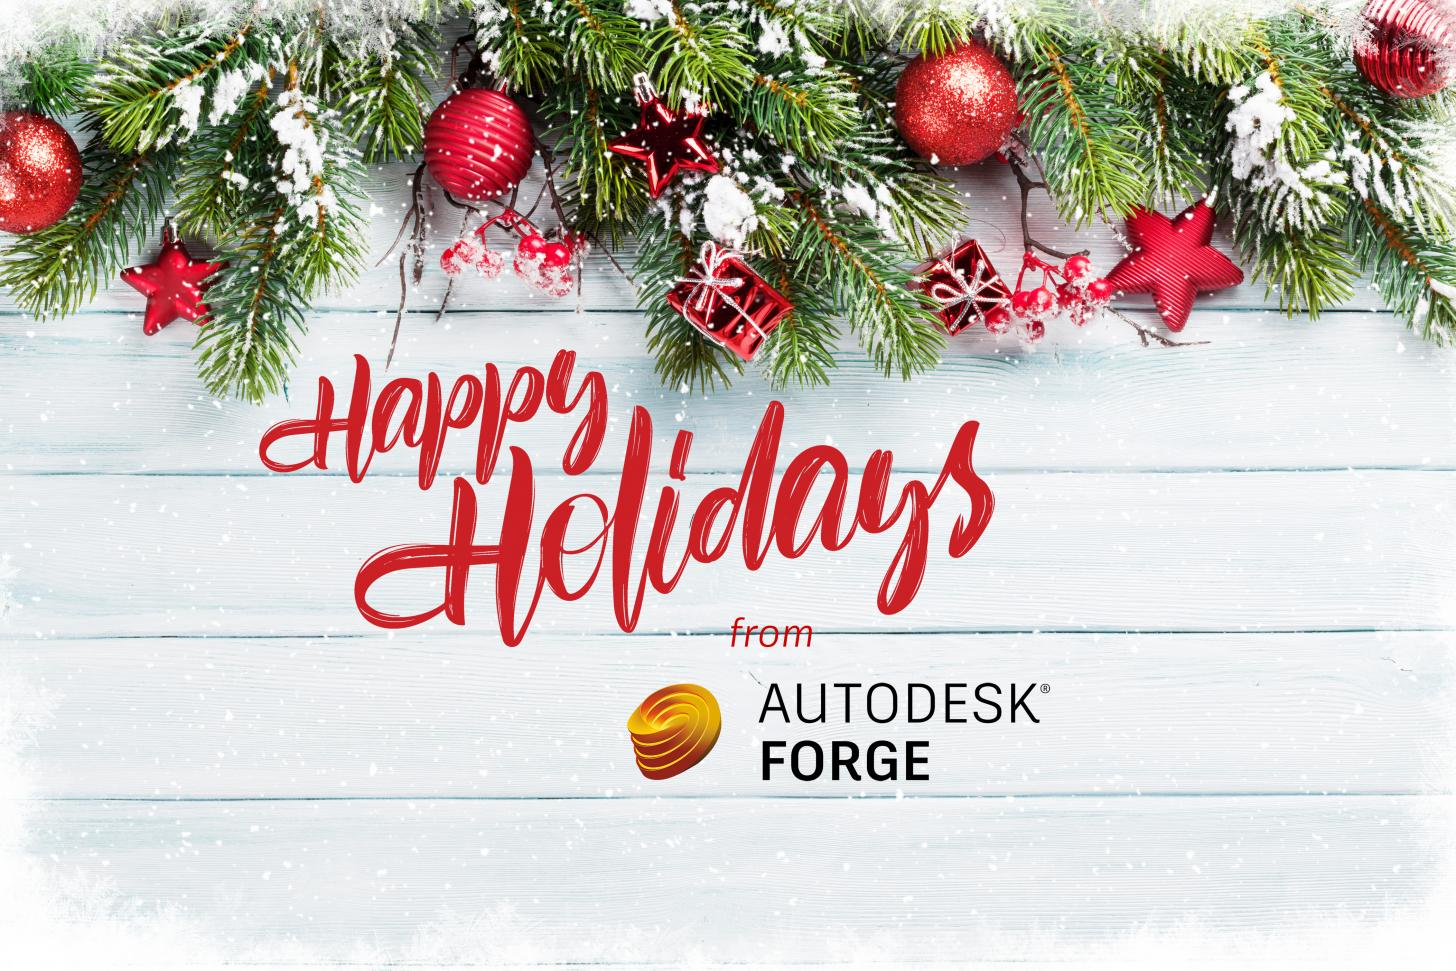 Happy holidays from Forge!